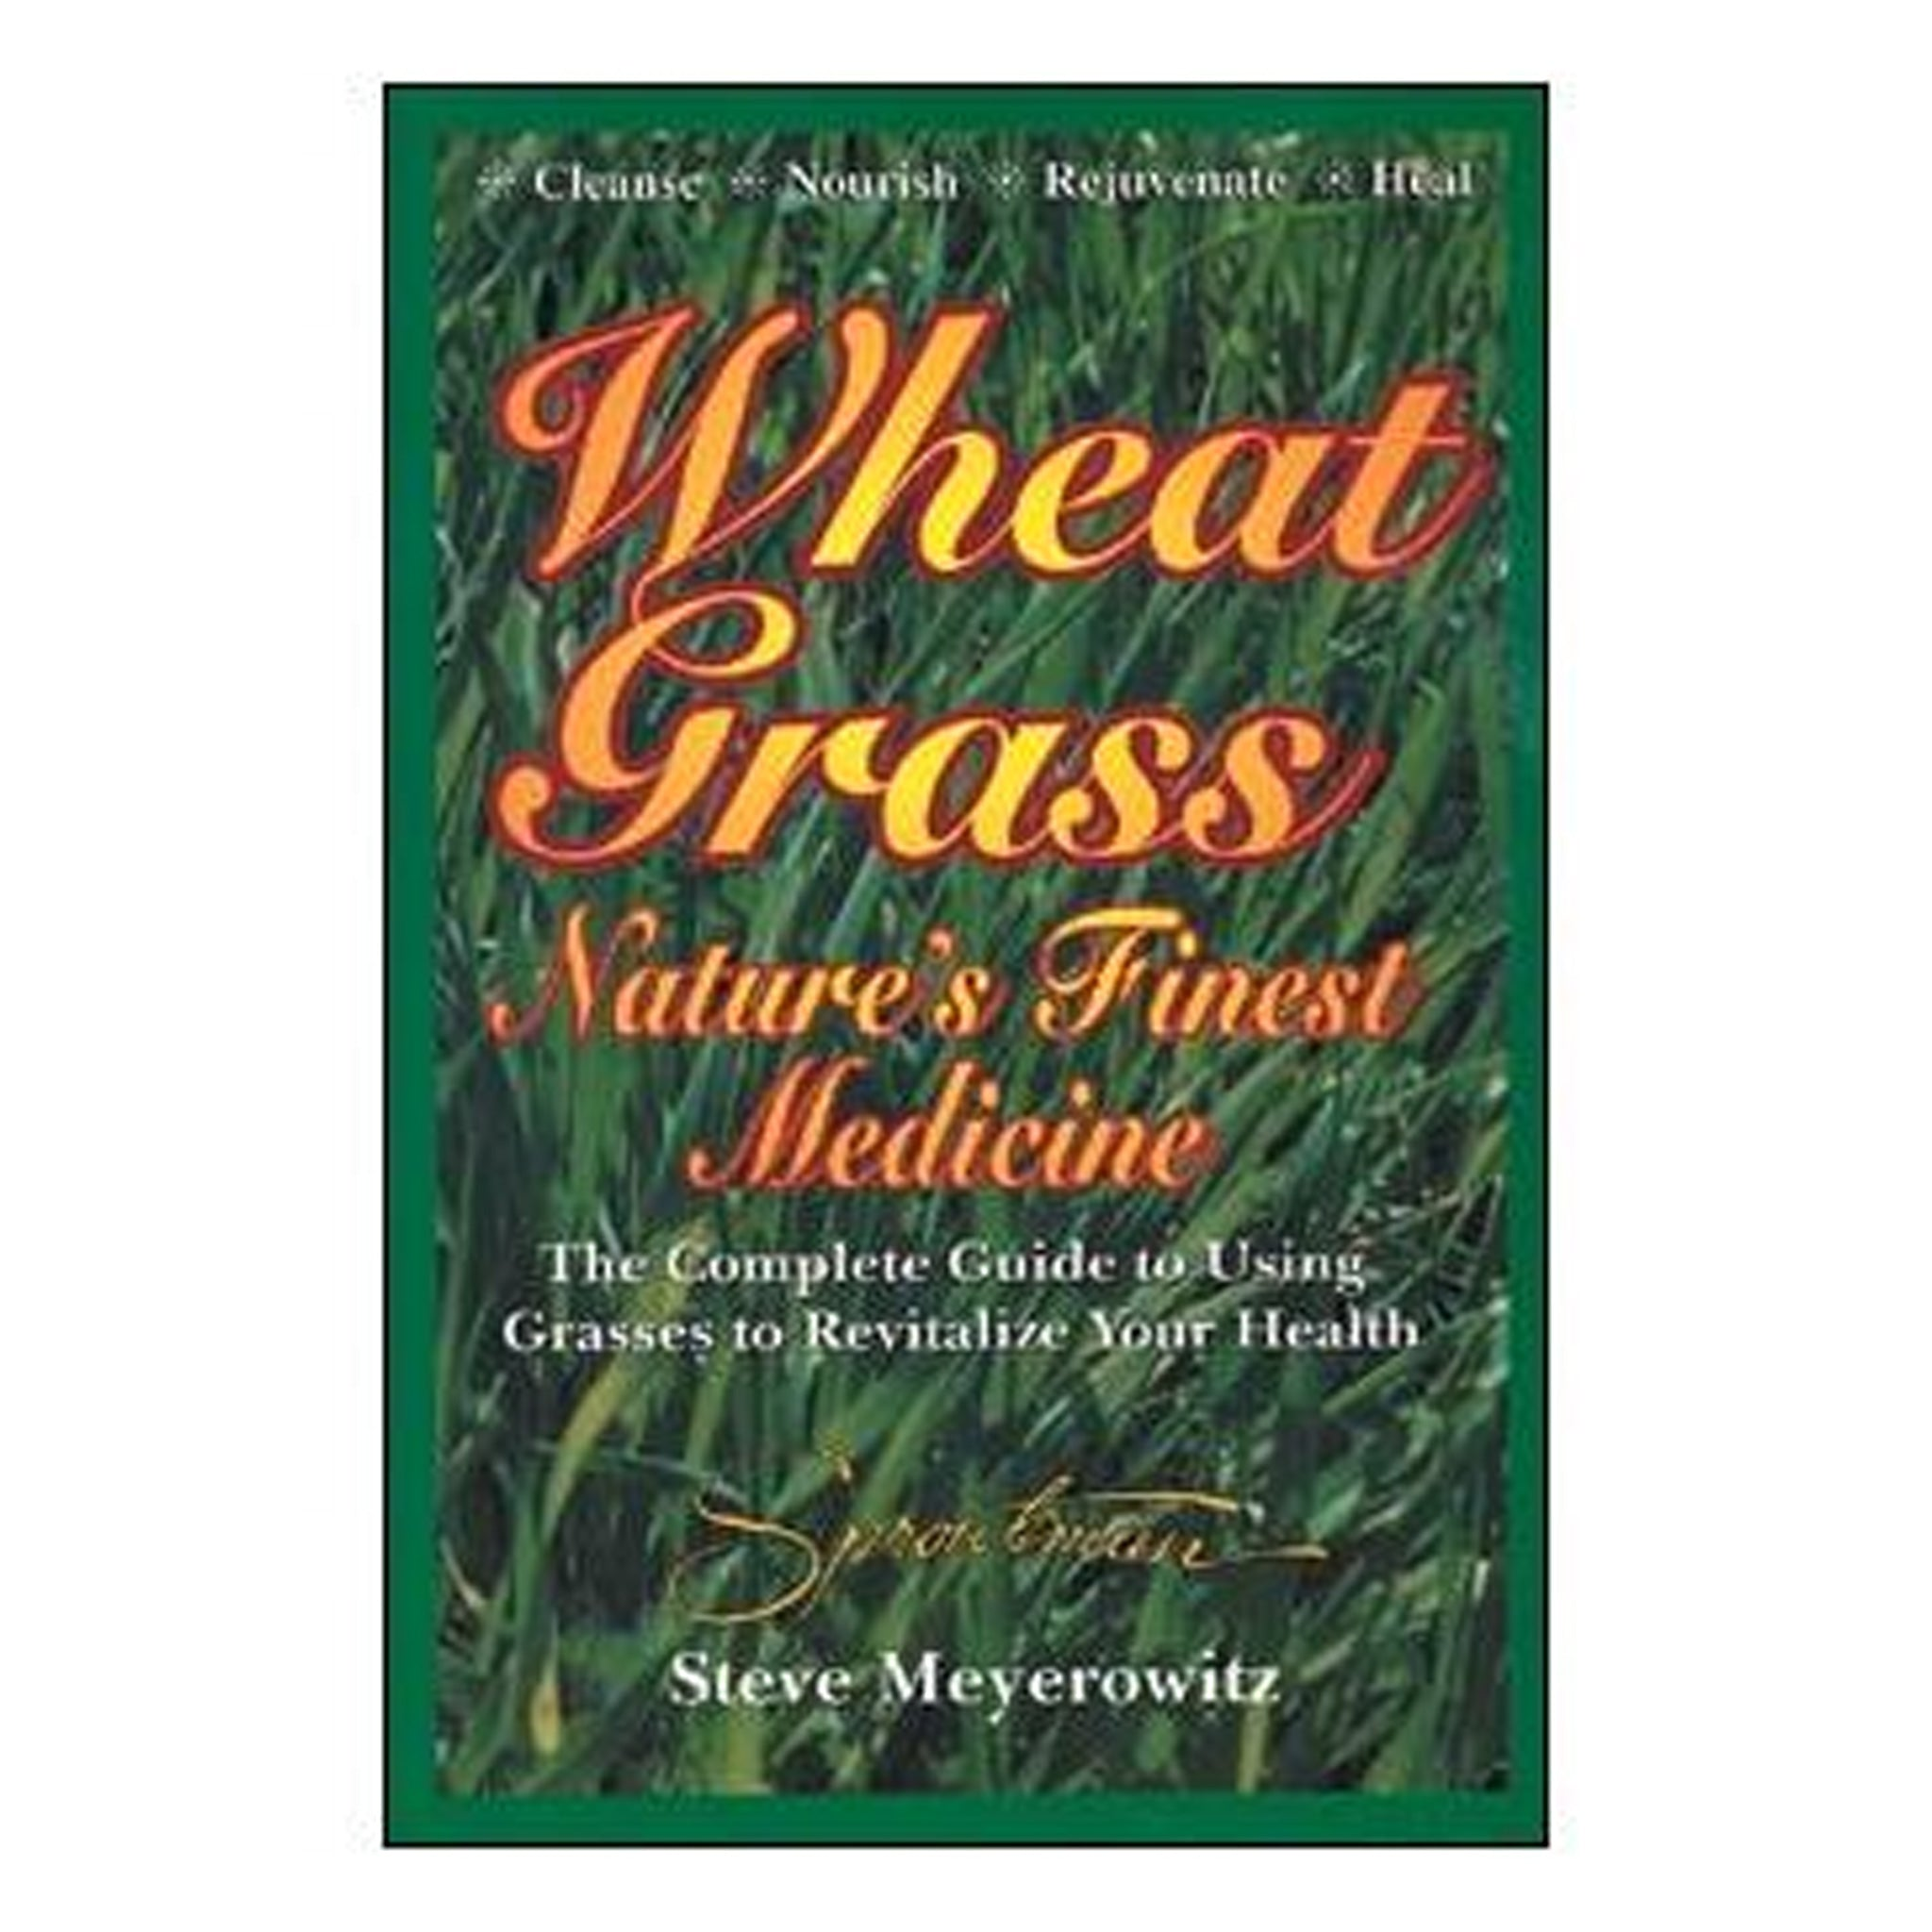 Wheatgrass, Nature's Finest Medicine, GPBSM02 - Tribest